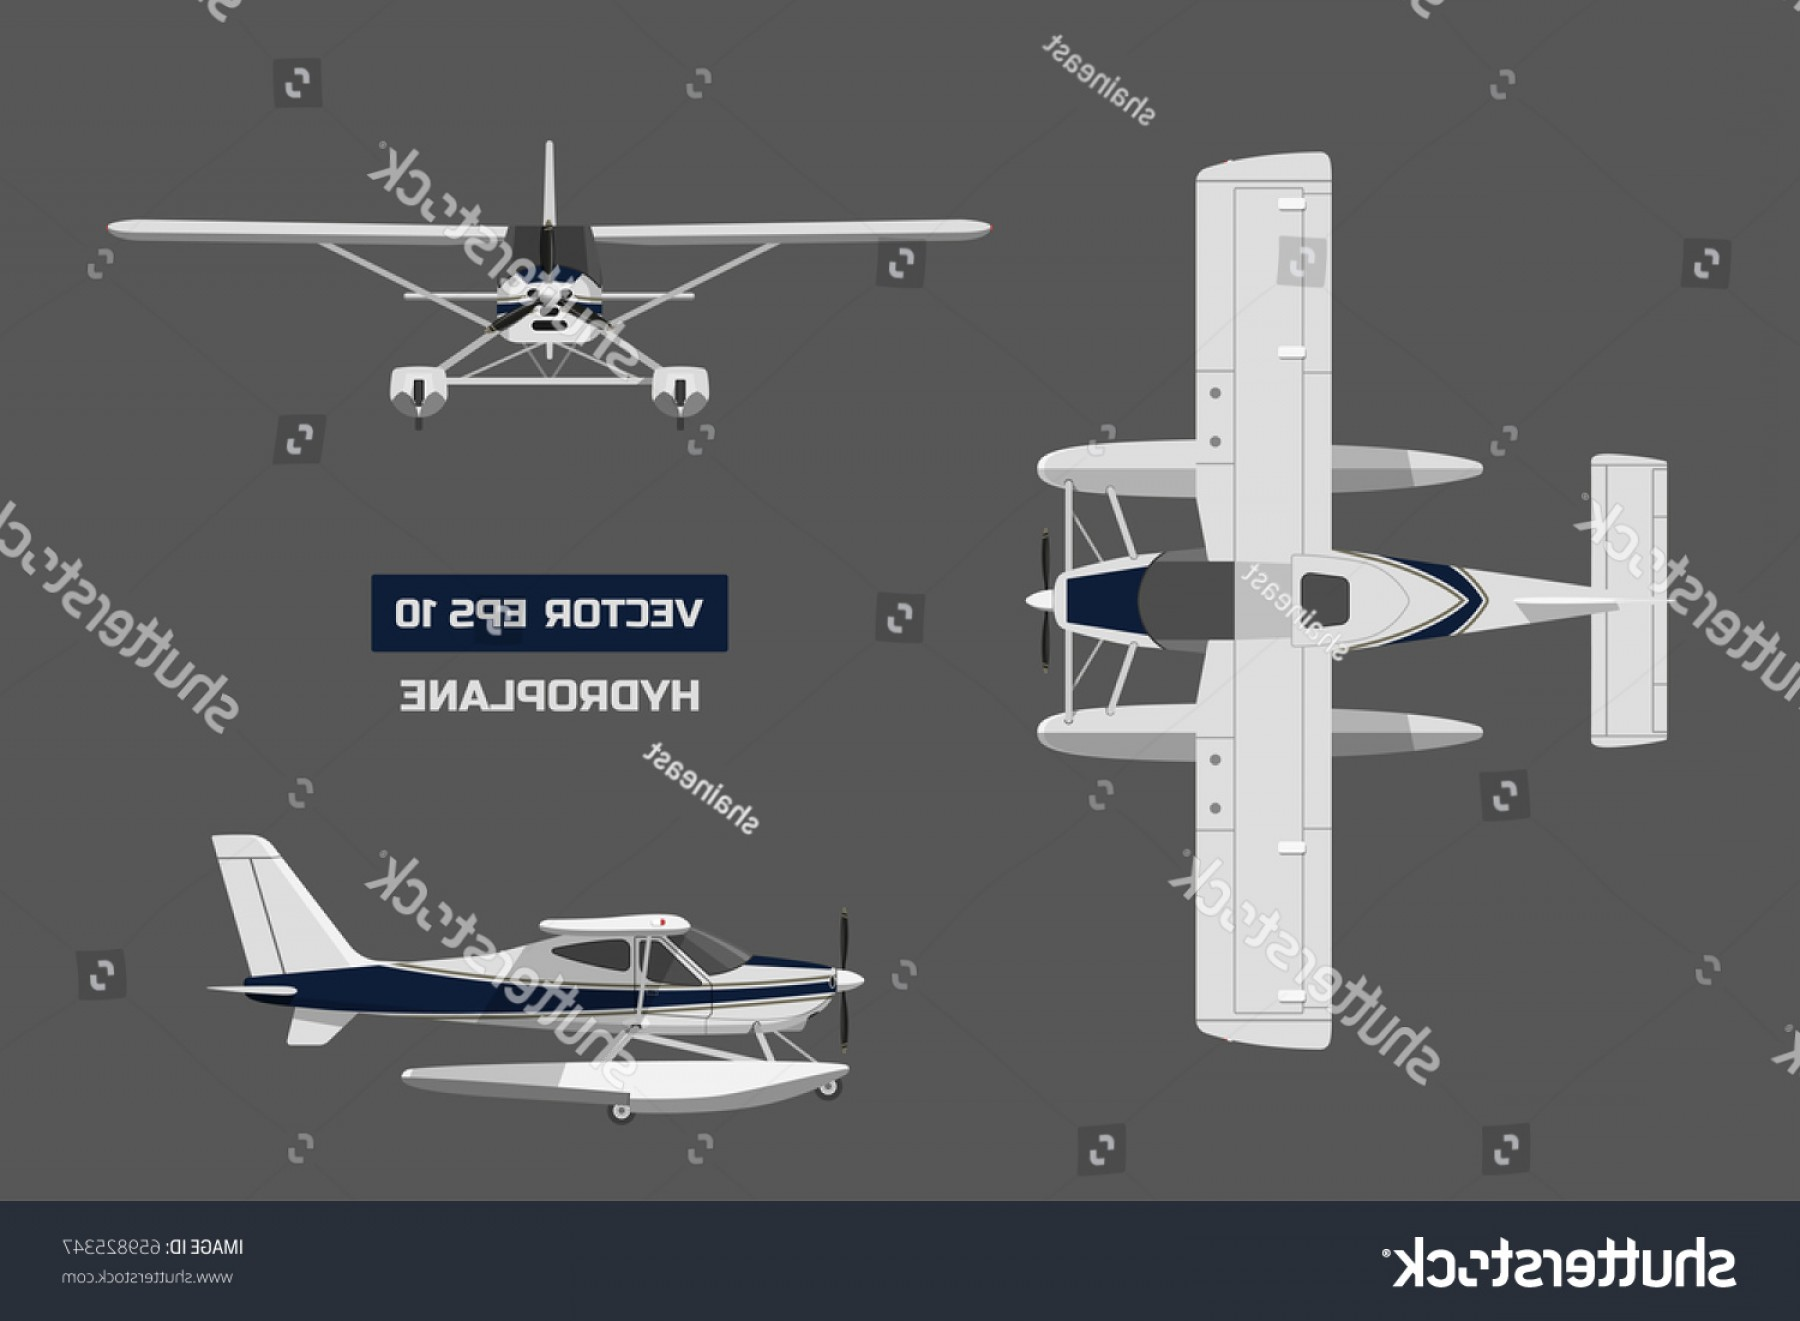 Model Planes Parts Vector: Plane Flat Style On Gray Background